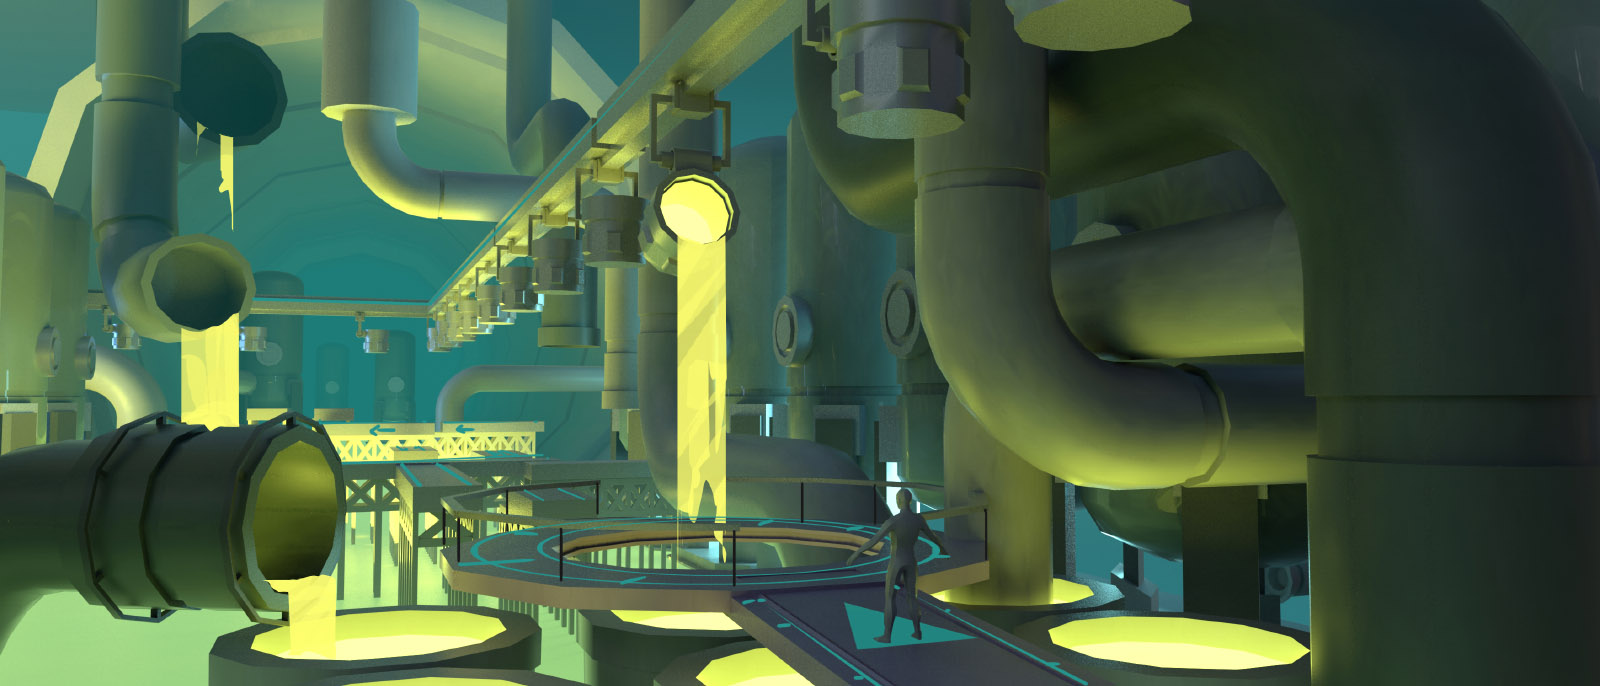 Toxic zone interior concept art by Brian Higgins.